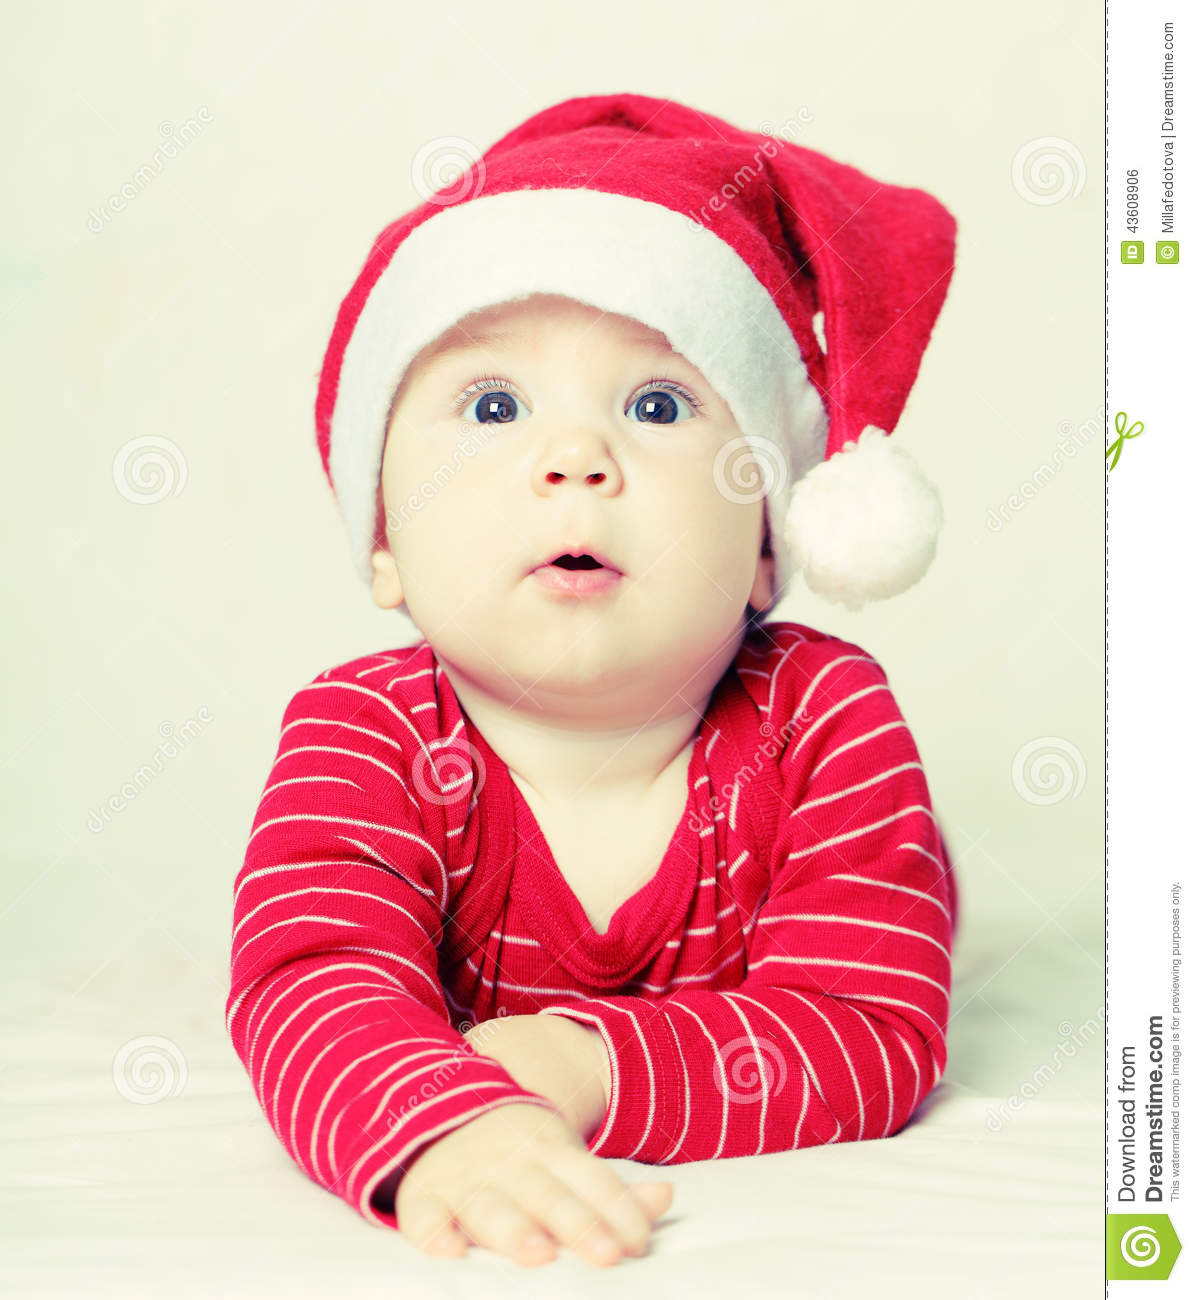 Happy New Year Baby In Santa Hat  Christmas Stock Photo   Image of     Download Happy New Year Baby In Santa Hat  Christmas Stock Photo   Image of  santa